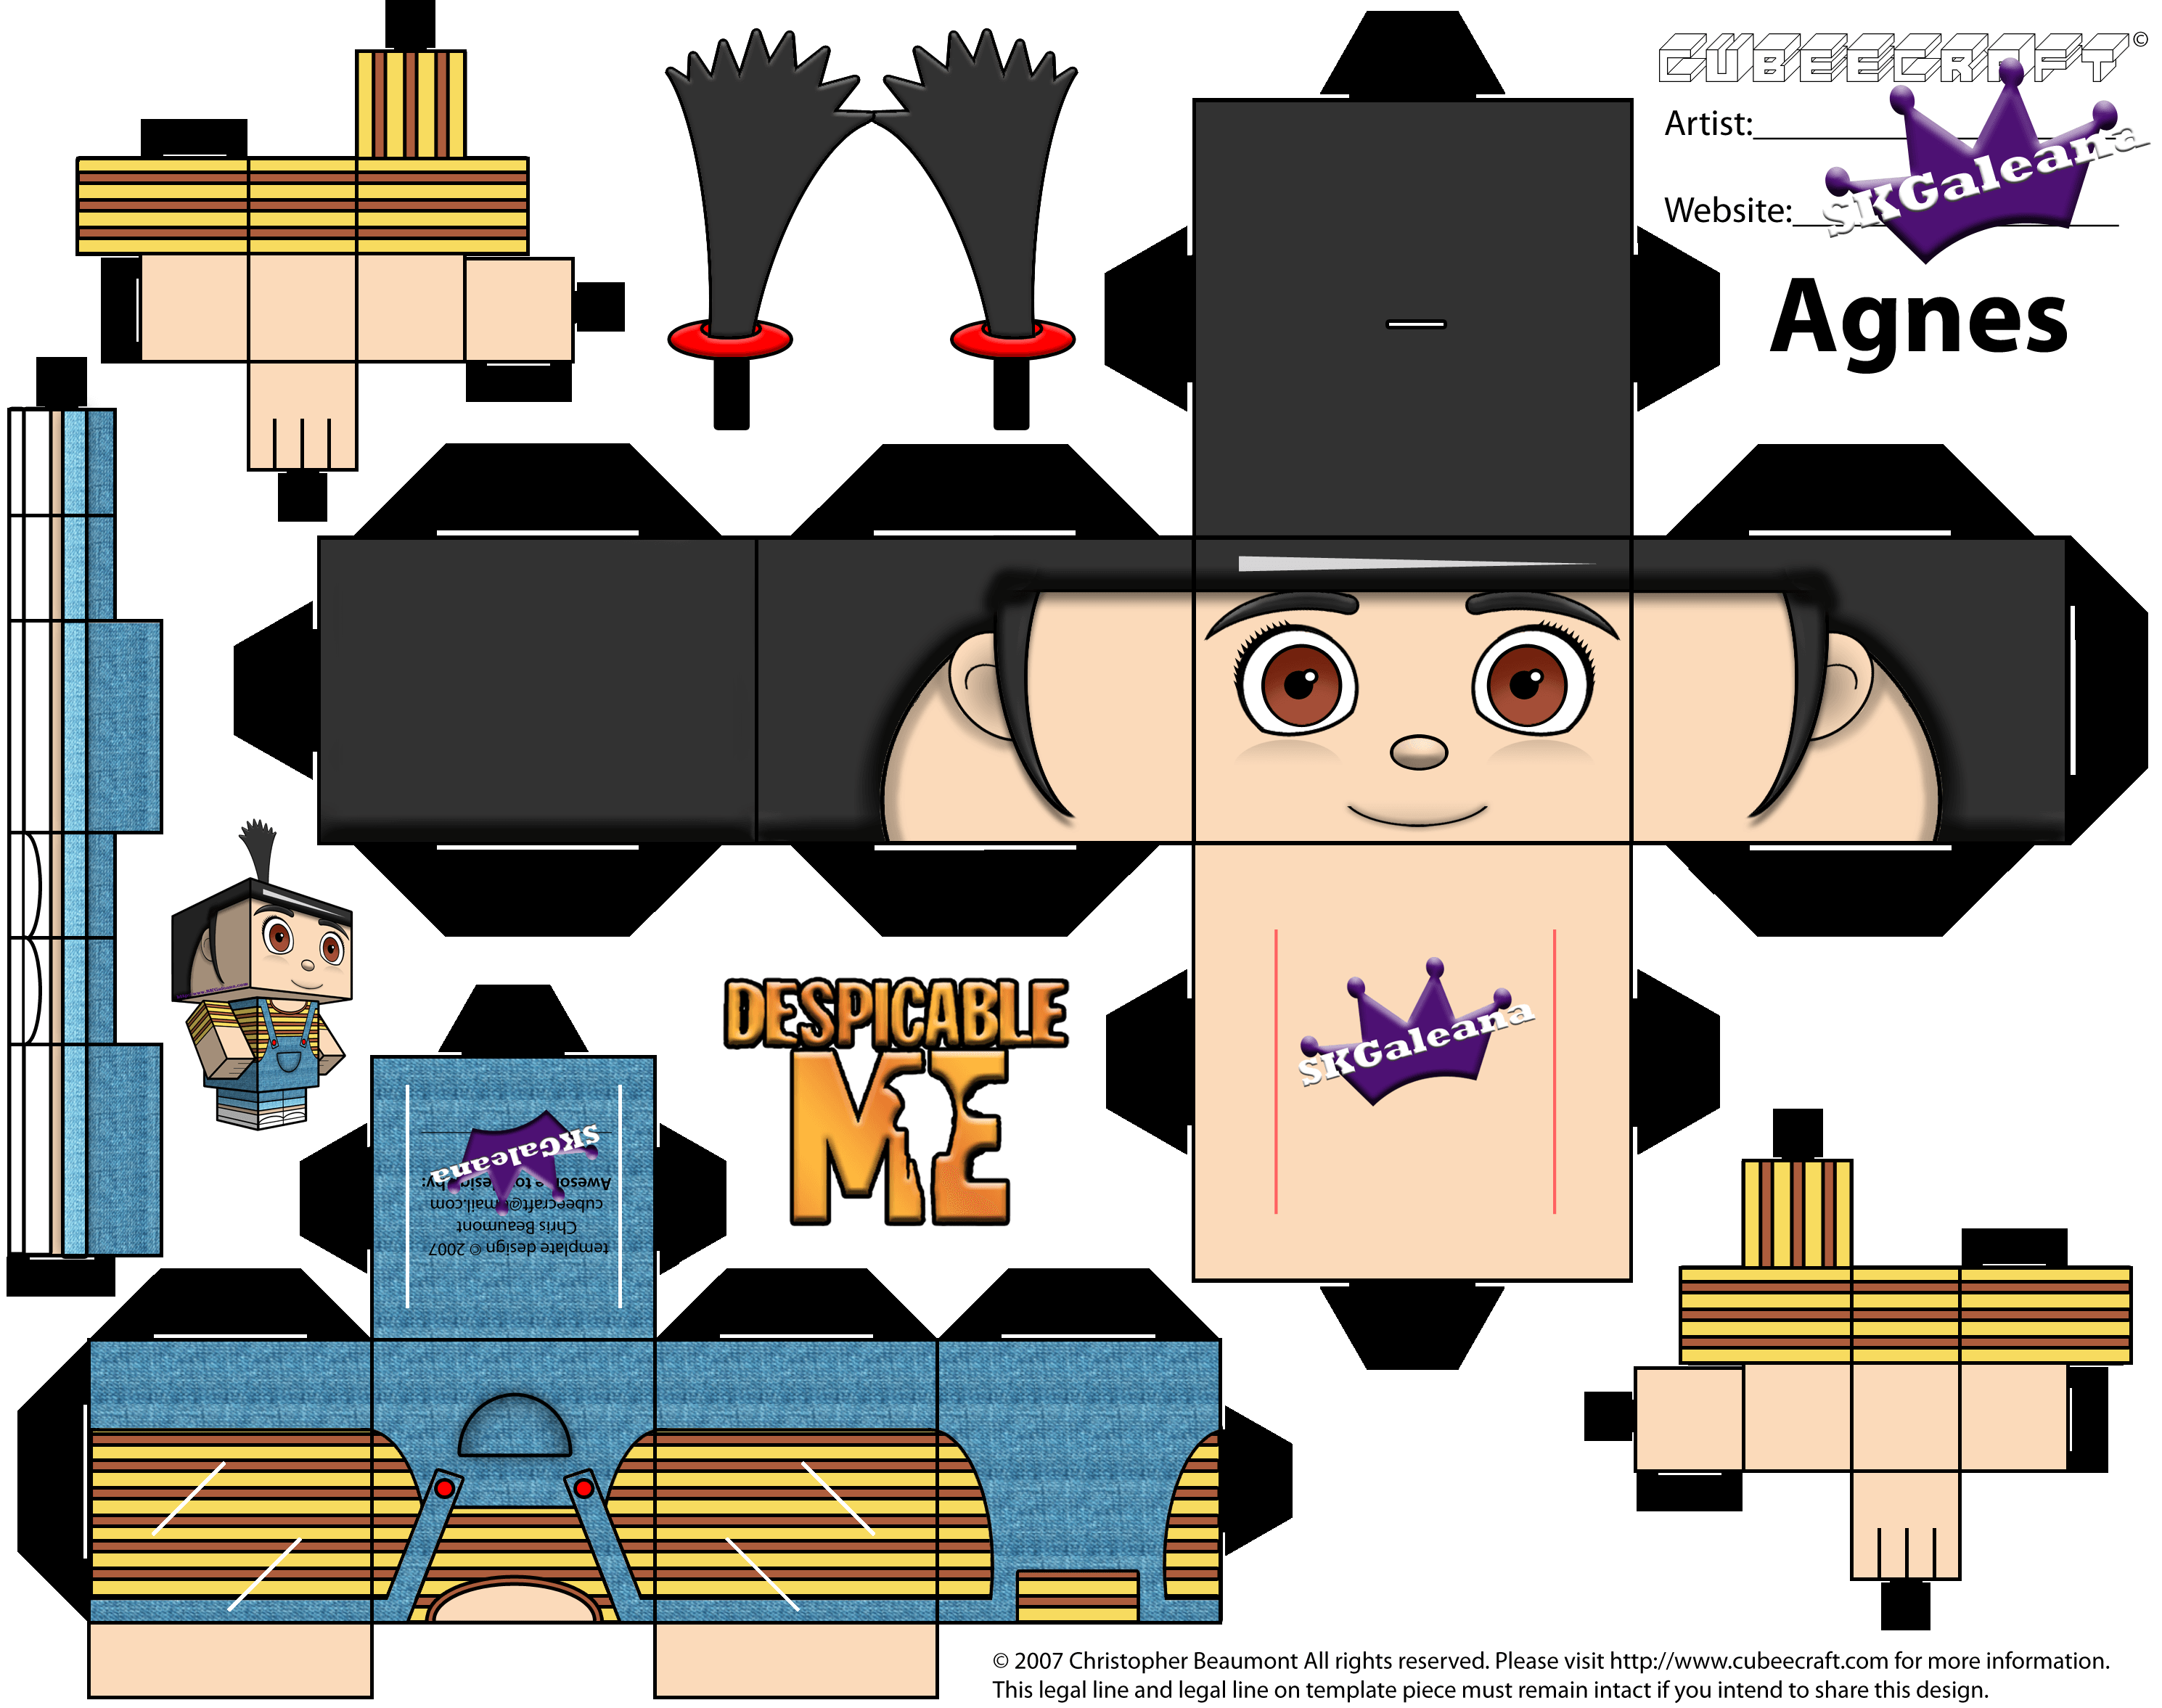 Skgaleana Free Cubeecraft Paper Craft Of Agnes From Despicable Me